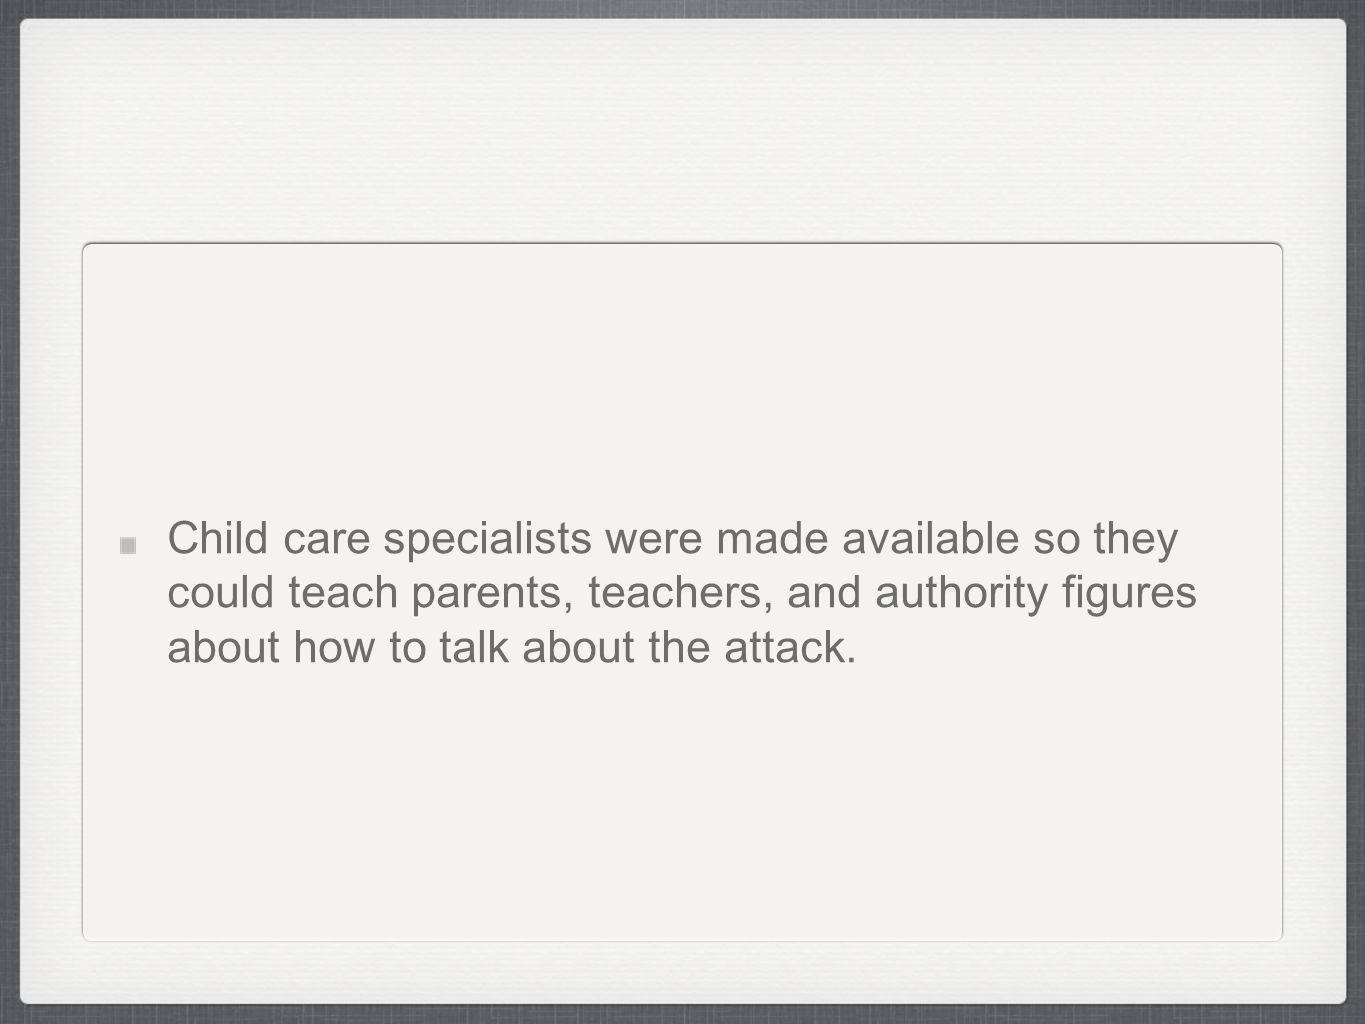 Child care specialists were made available so they could teach parents, teachers, and authority figures about how to talk about the attack.